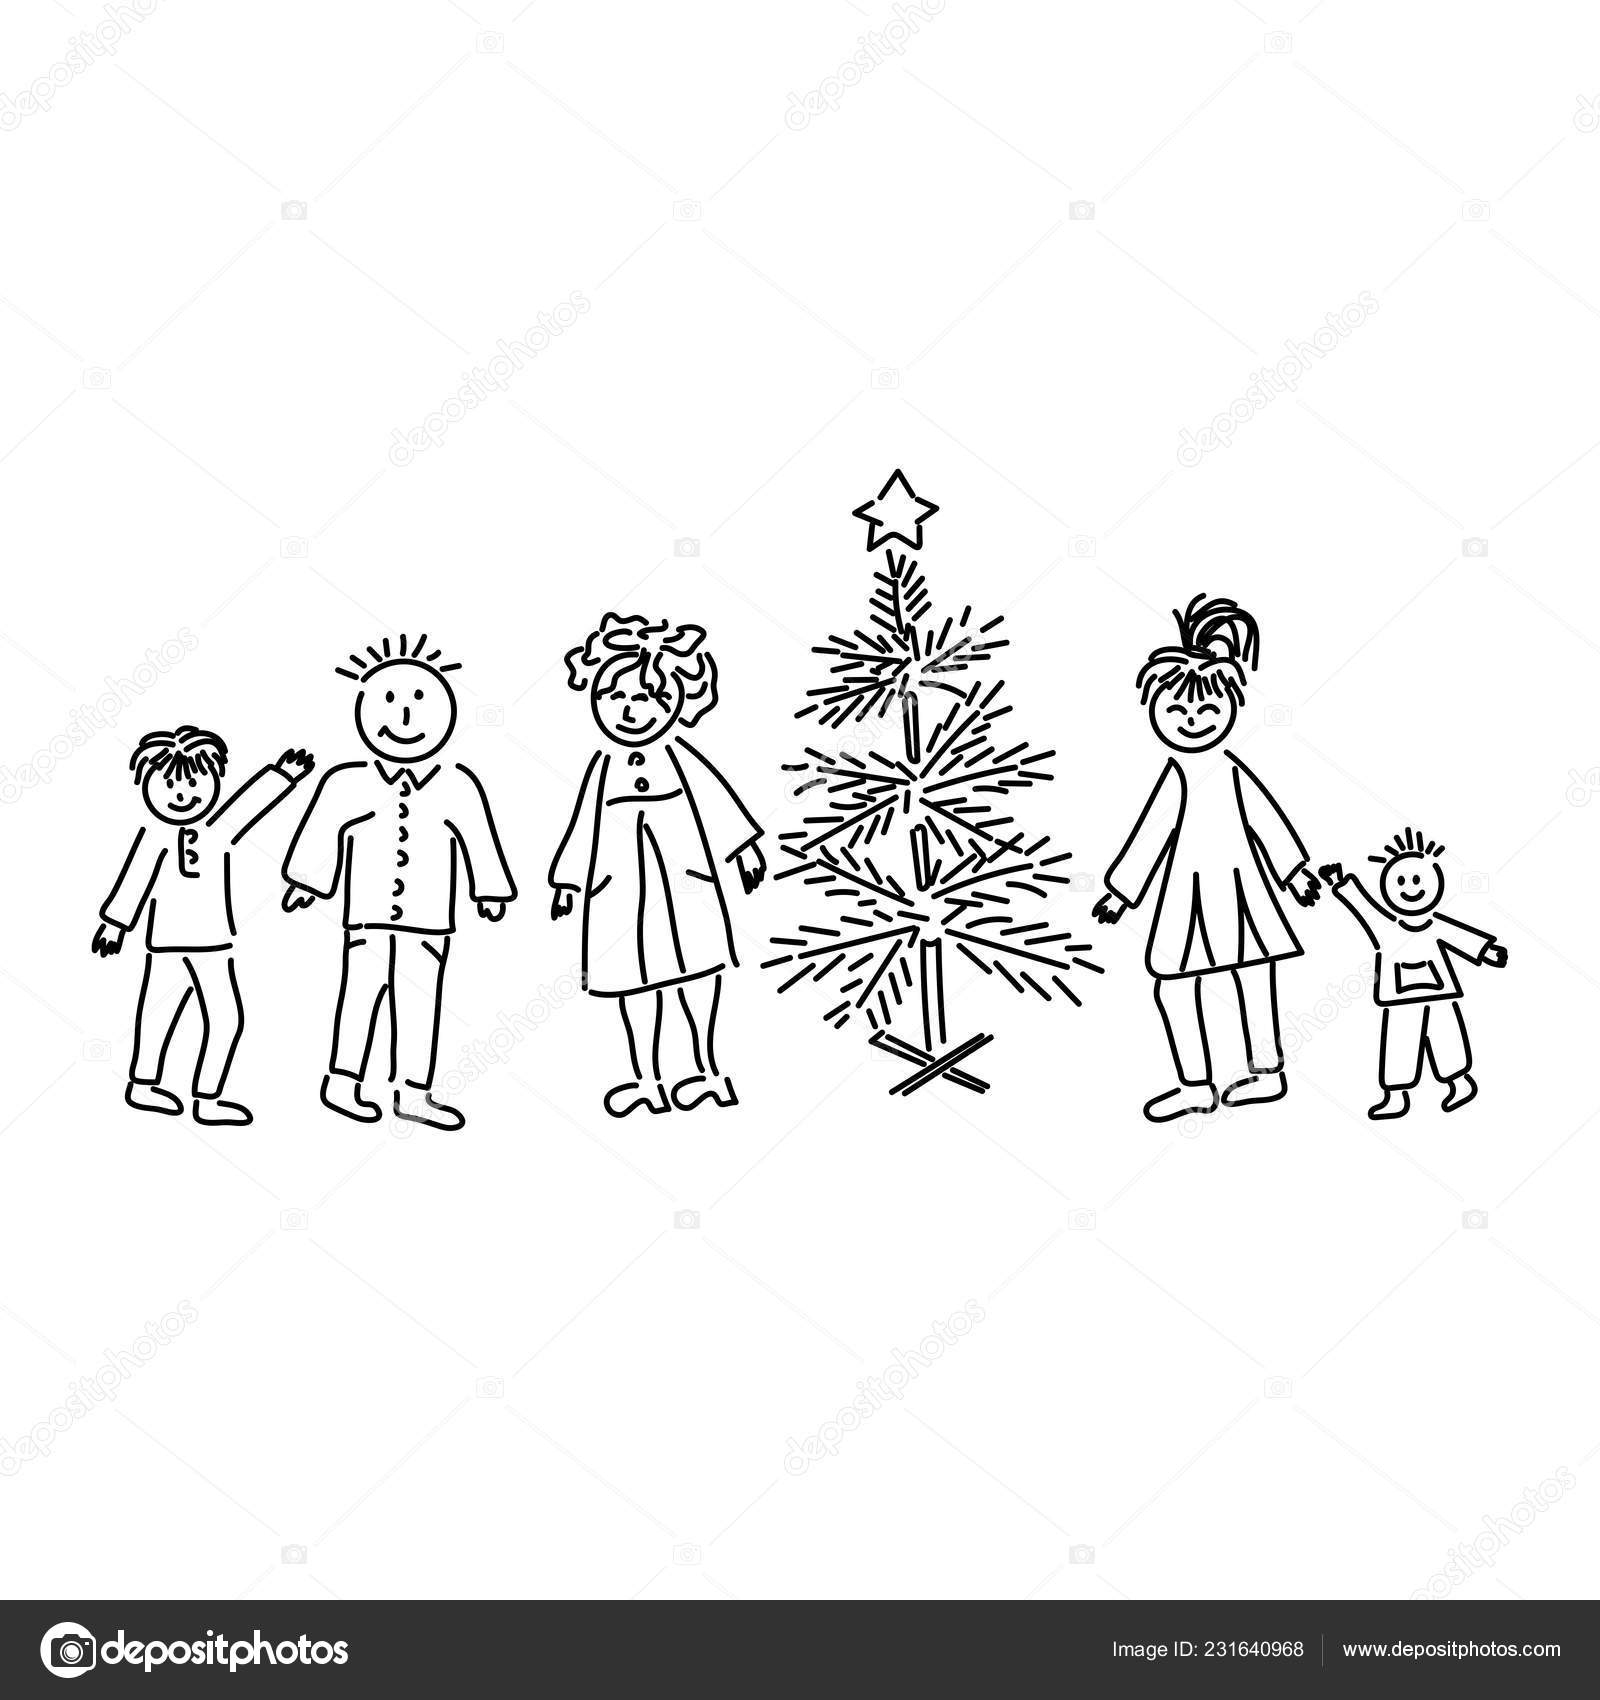 Children Tree Drawing The lines should curve toward each other slightly. children tree drawing